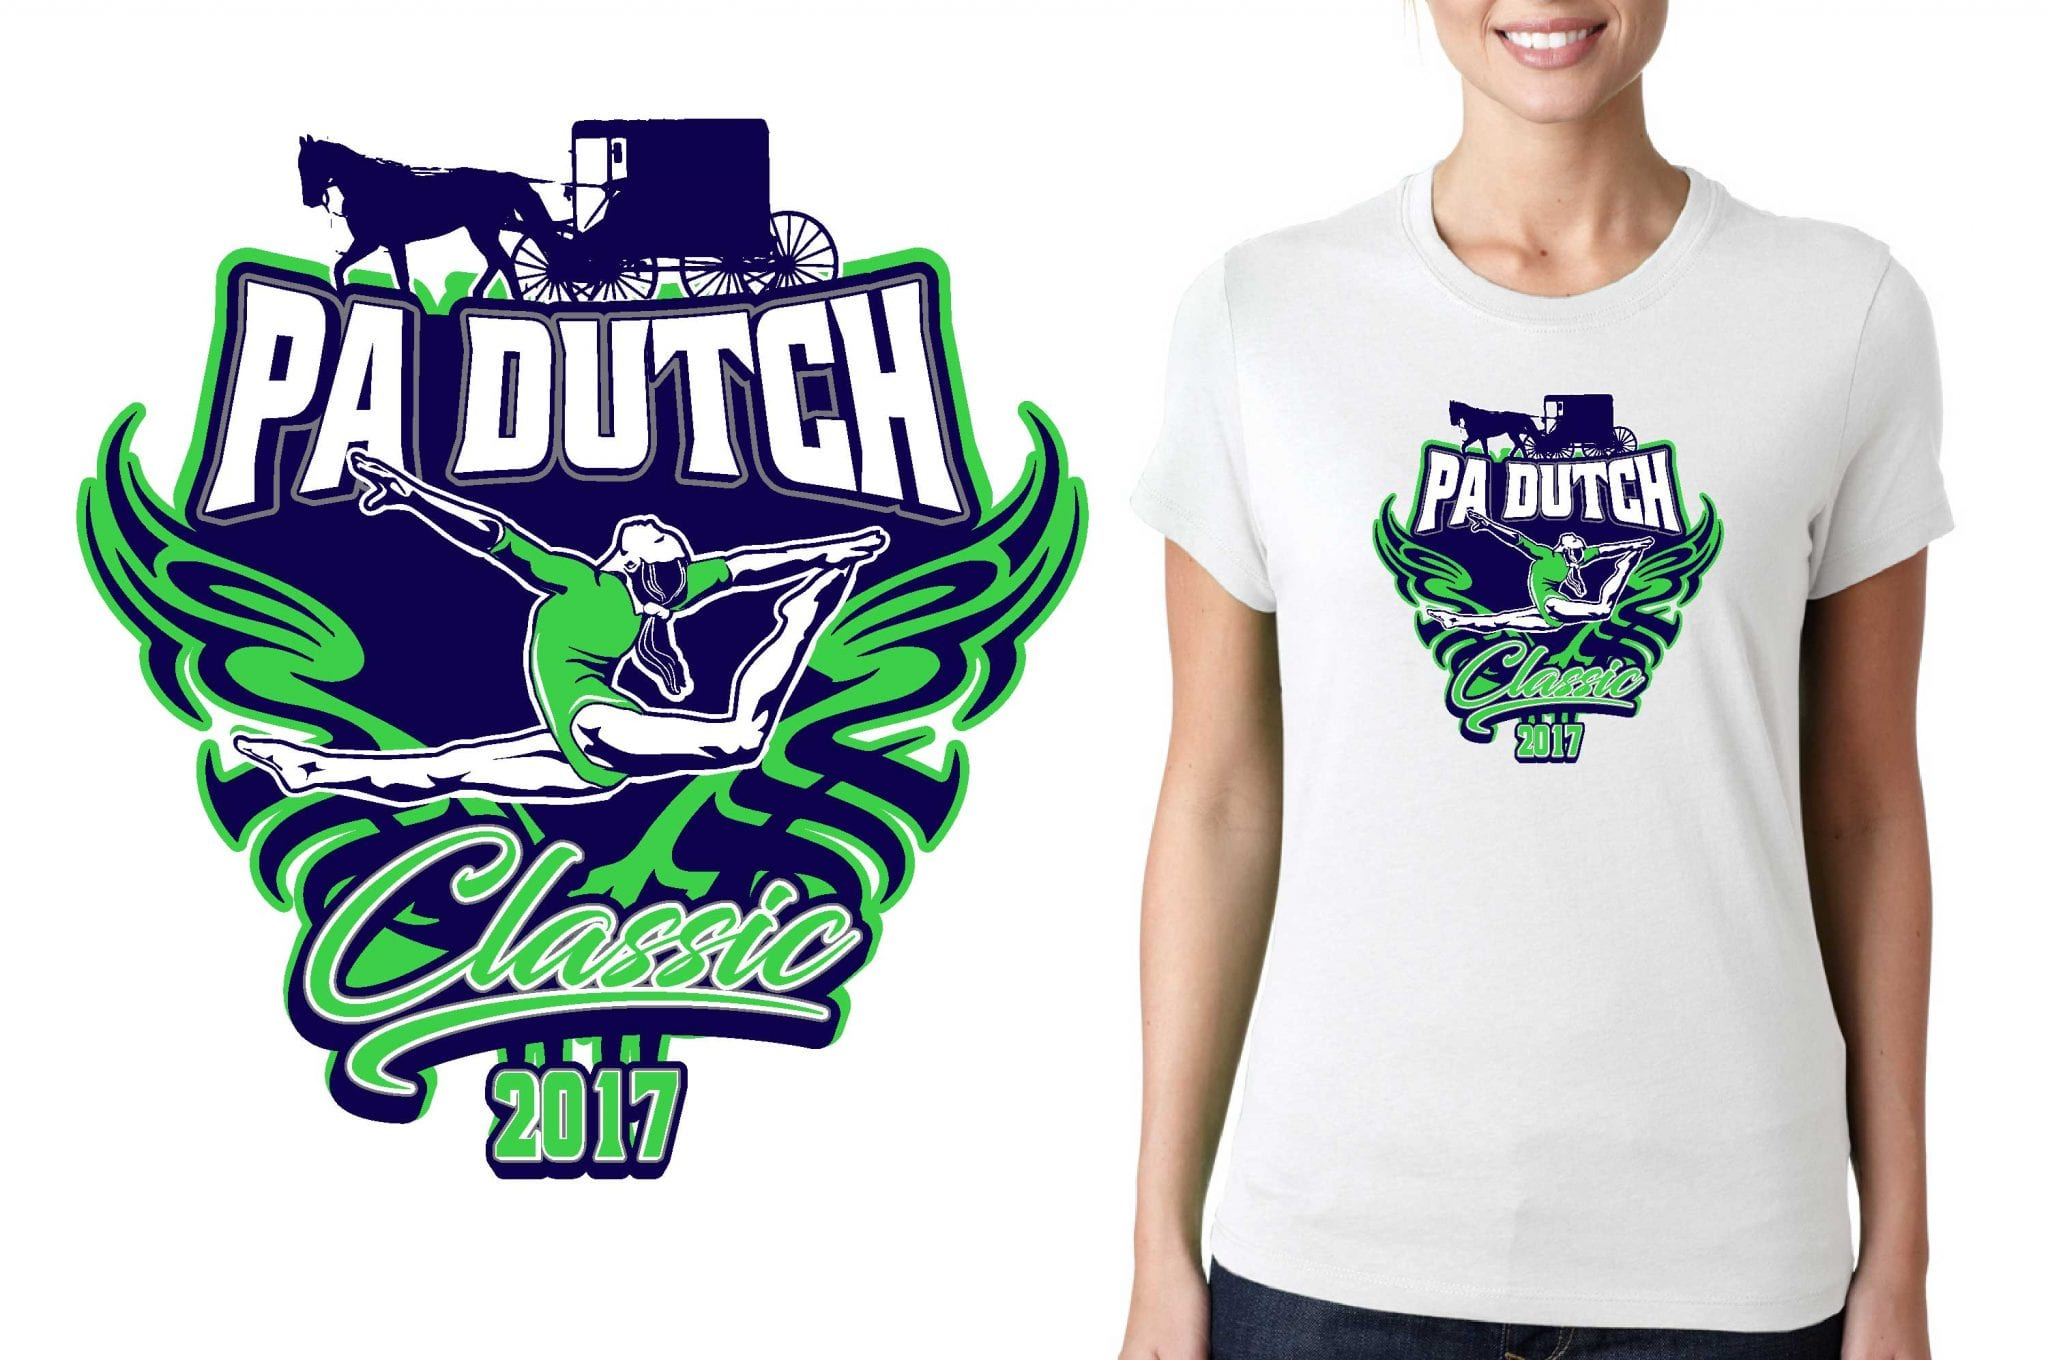 2017 PA Dutch Classic vector logo design for gymnastics t-shirt UrArtStudio